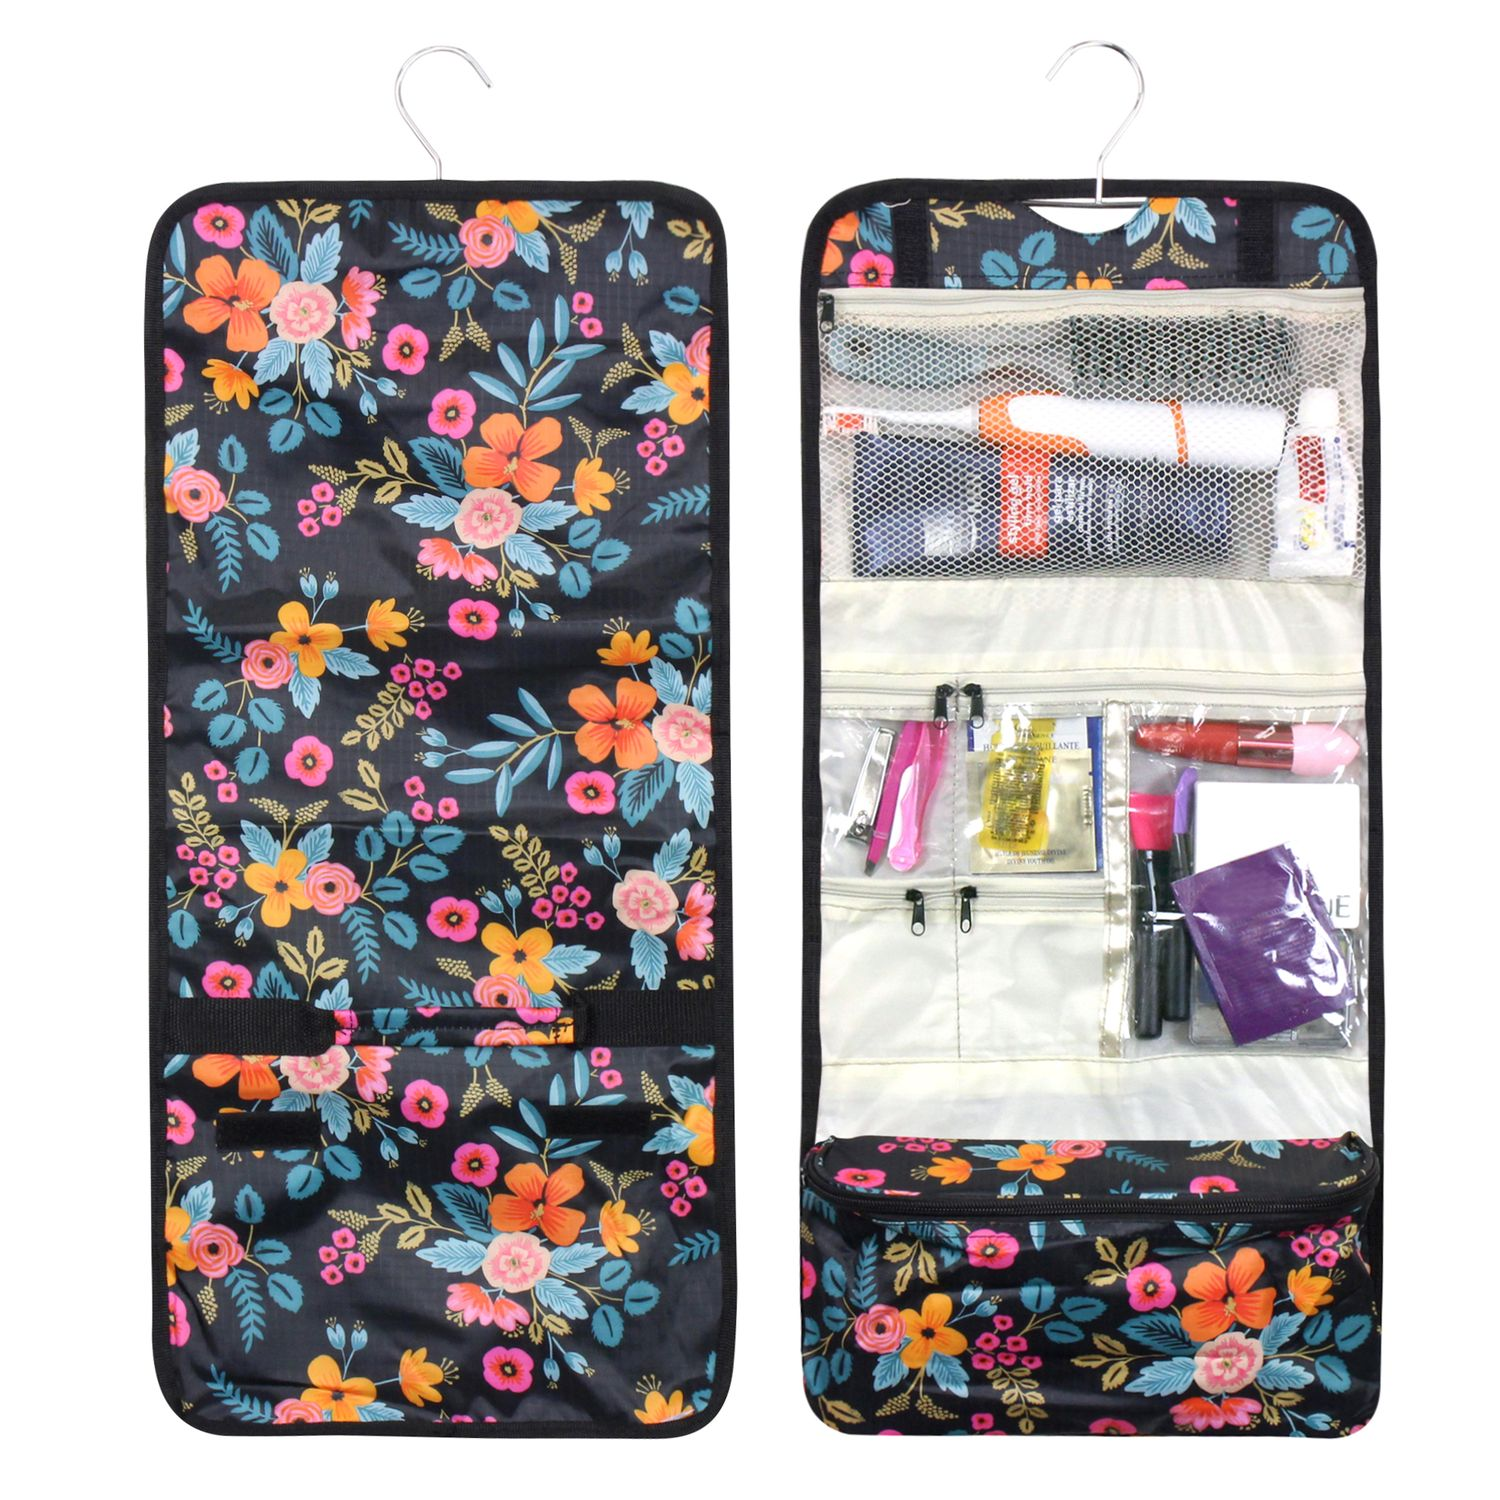 Foldable Travel Cosmetic Makeup Hanging Carry Bag by Zodaca for Business Trip Camping Hiking Toiletry - Multi-color Marion Floral Print